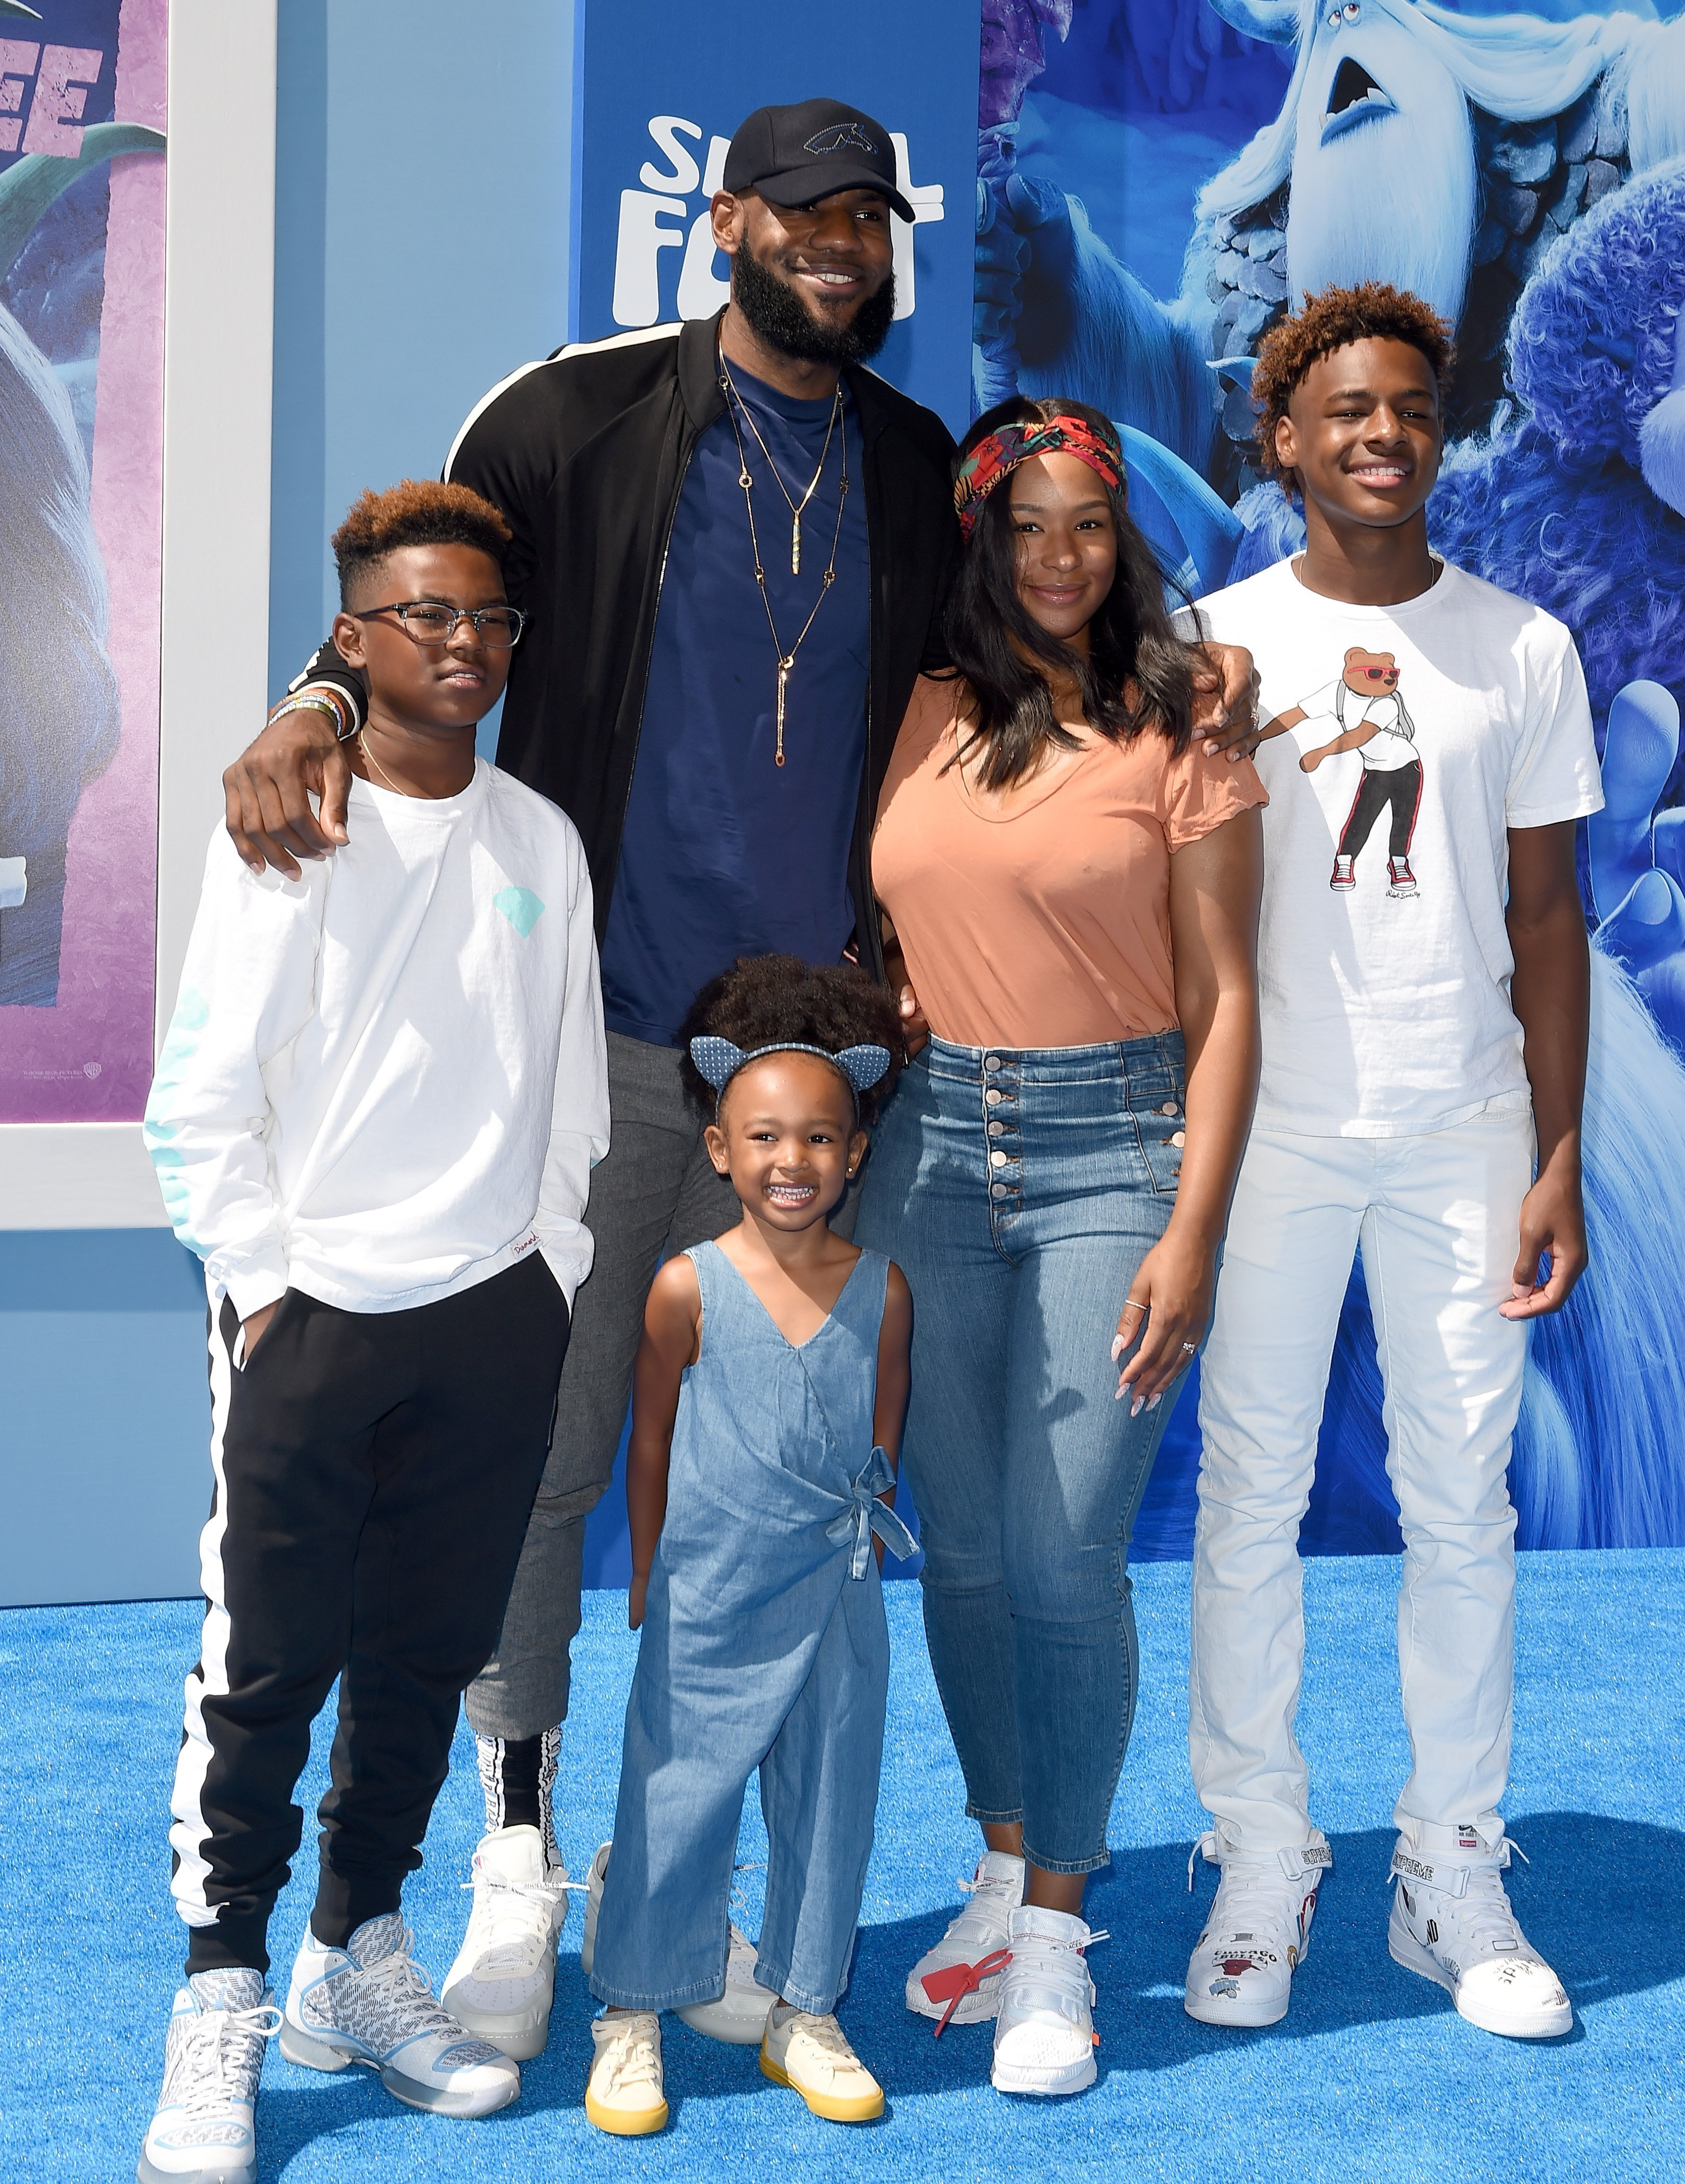 LeBron James, Savannah James, LeBron James Jr., Bryce Maximus James and Zhuri James attend the premiere of Warner Bros. Pictures' 'Smallfoot' at Regency Village Theatre | Photo: Getty Image